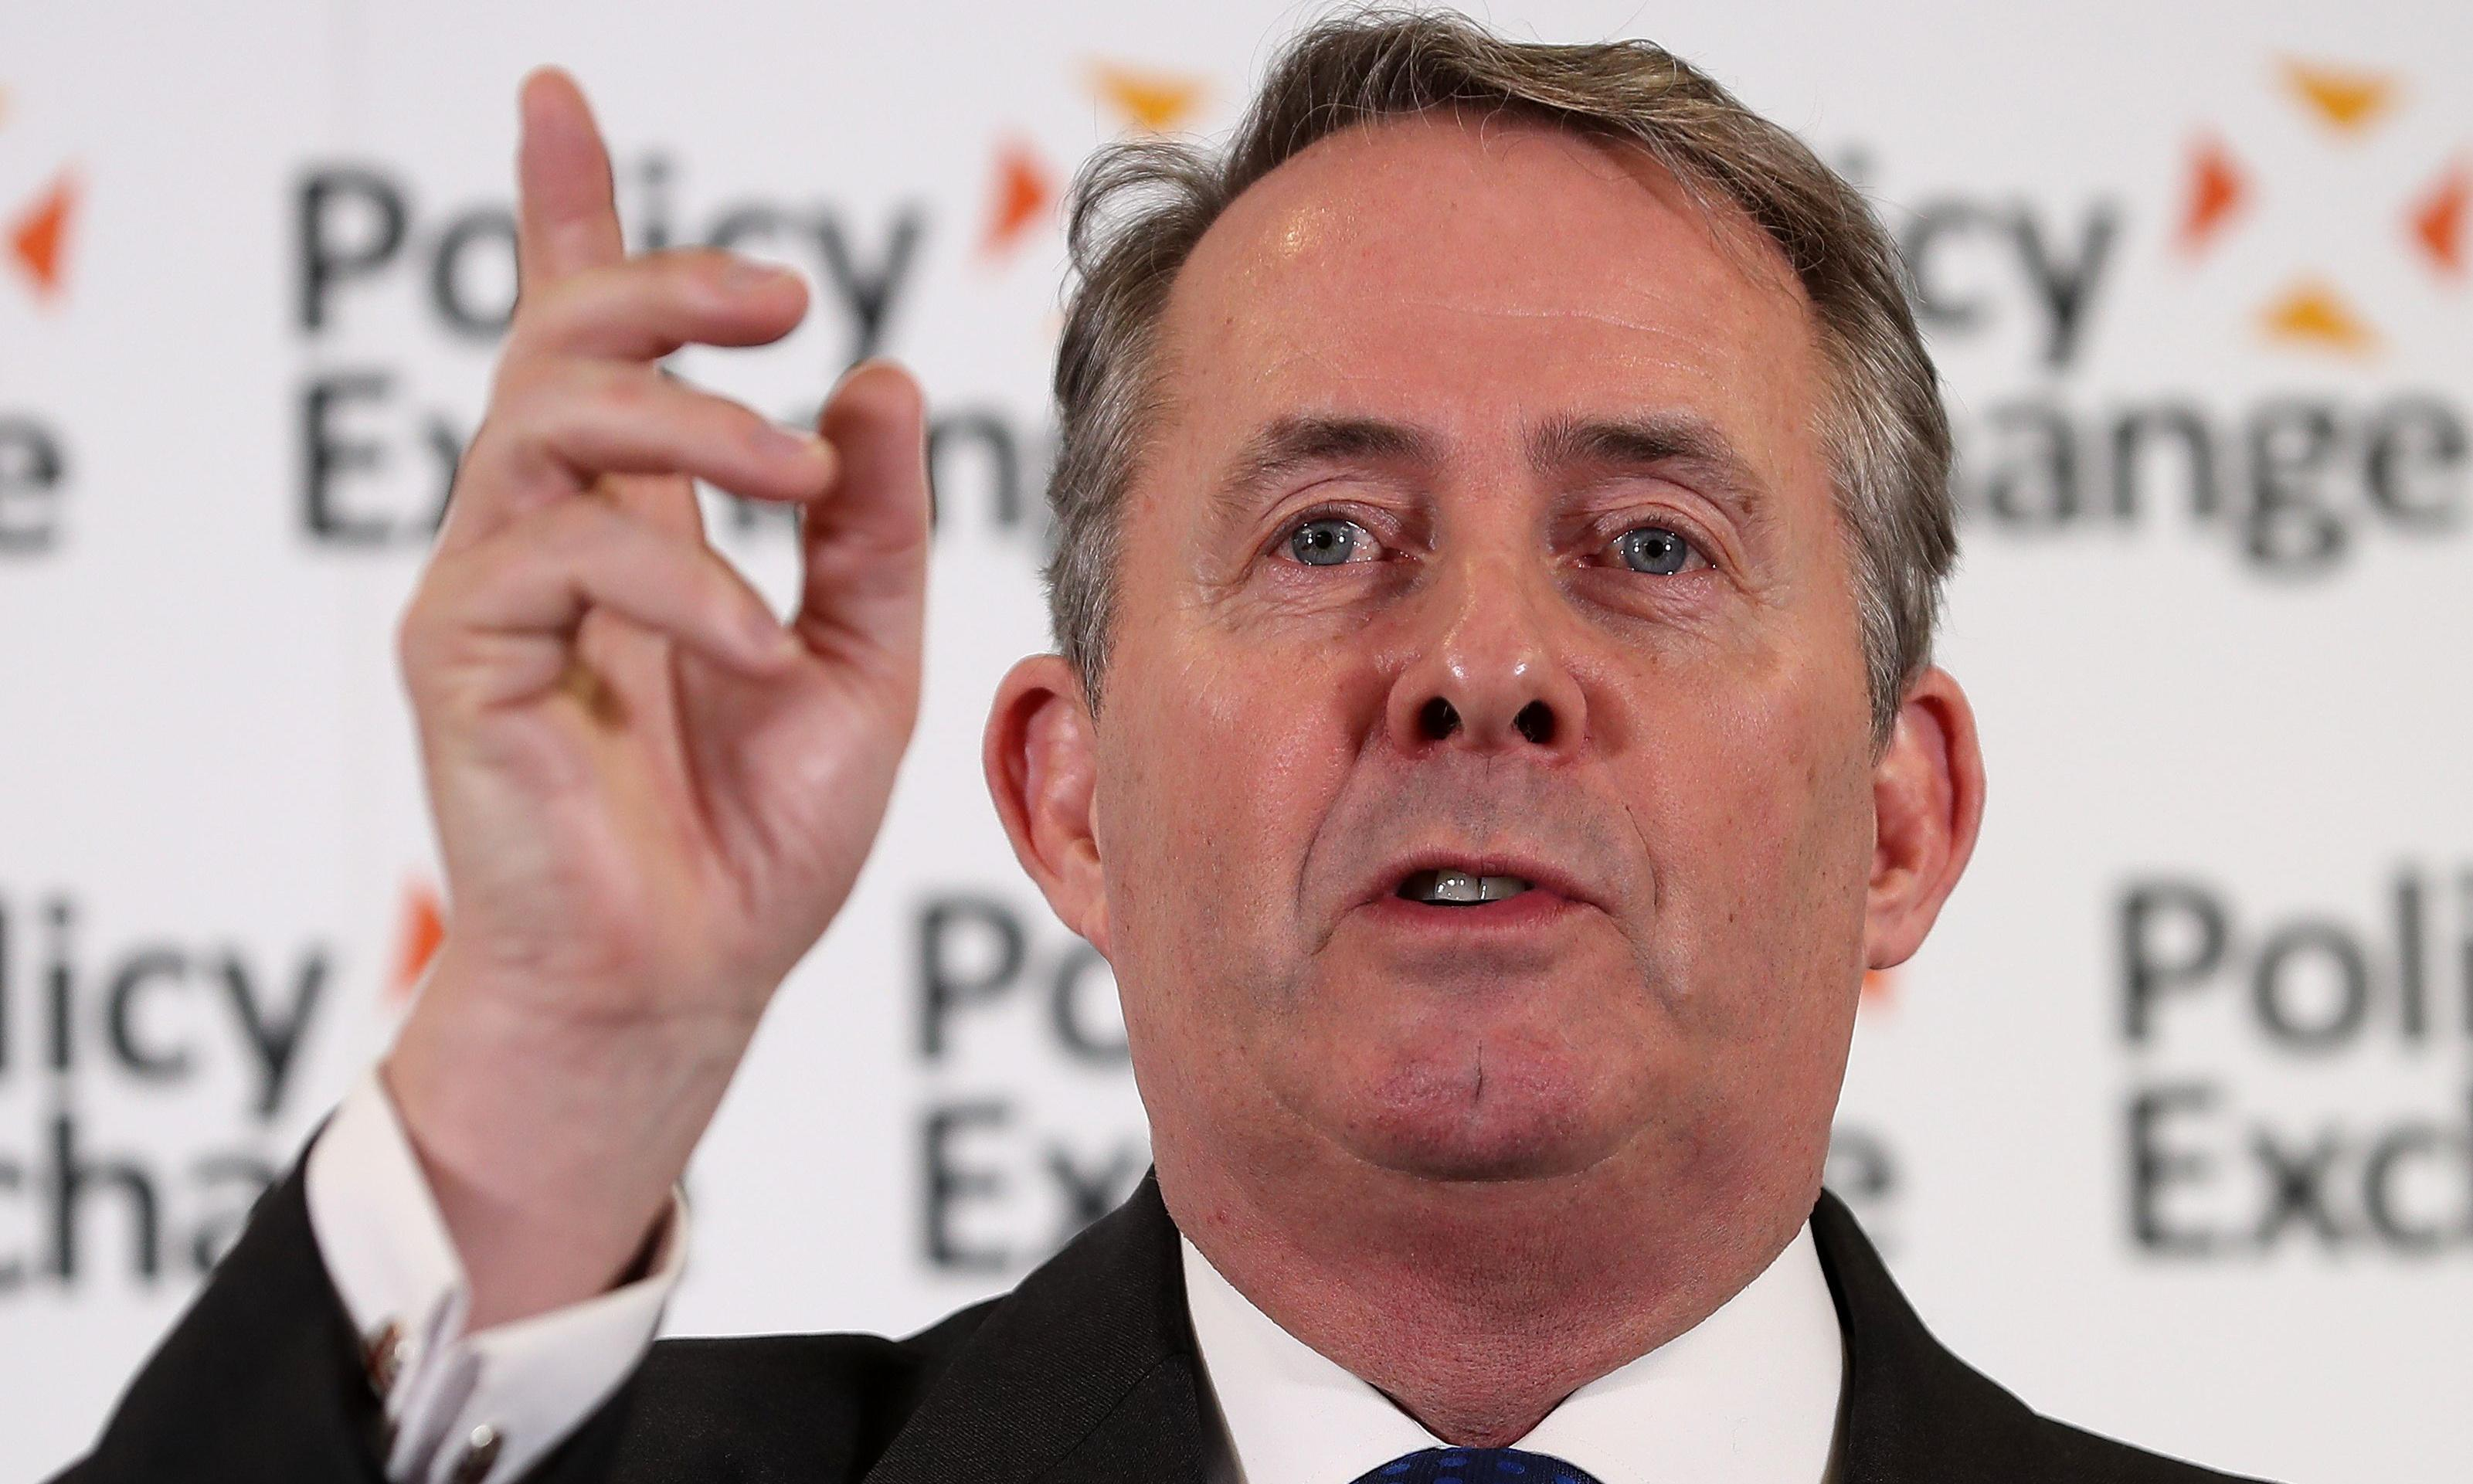 We cannot allow Liam Fox's post-Brexit trade plans to go unscrutinised